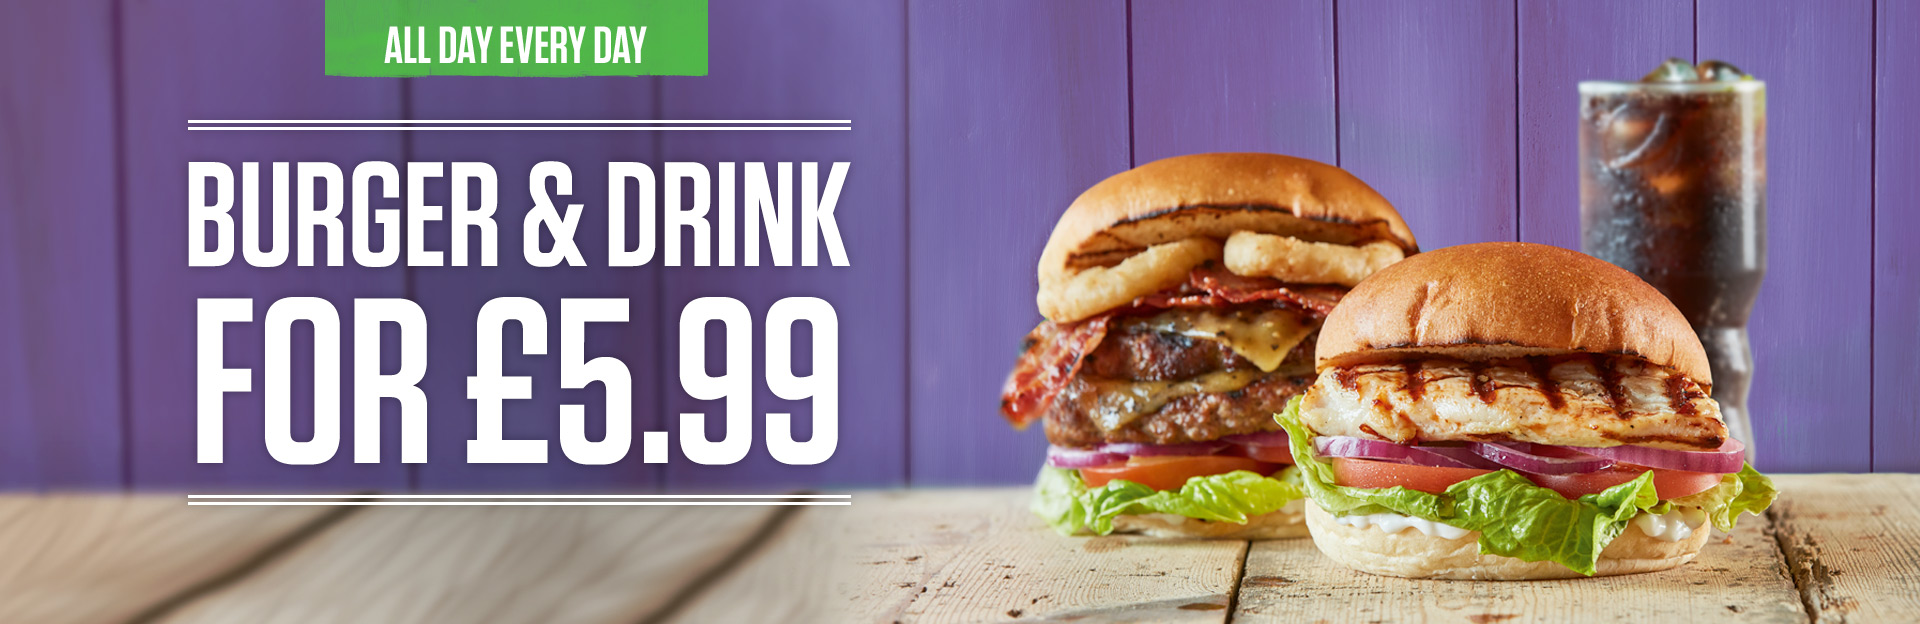 Burger and Drink Deal at Cricketers